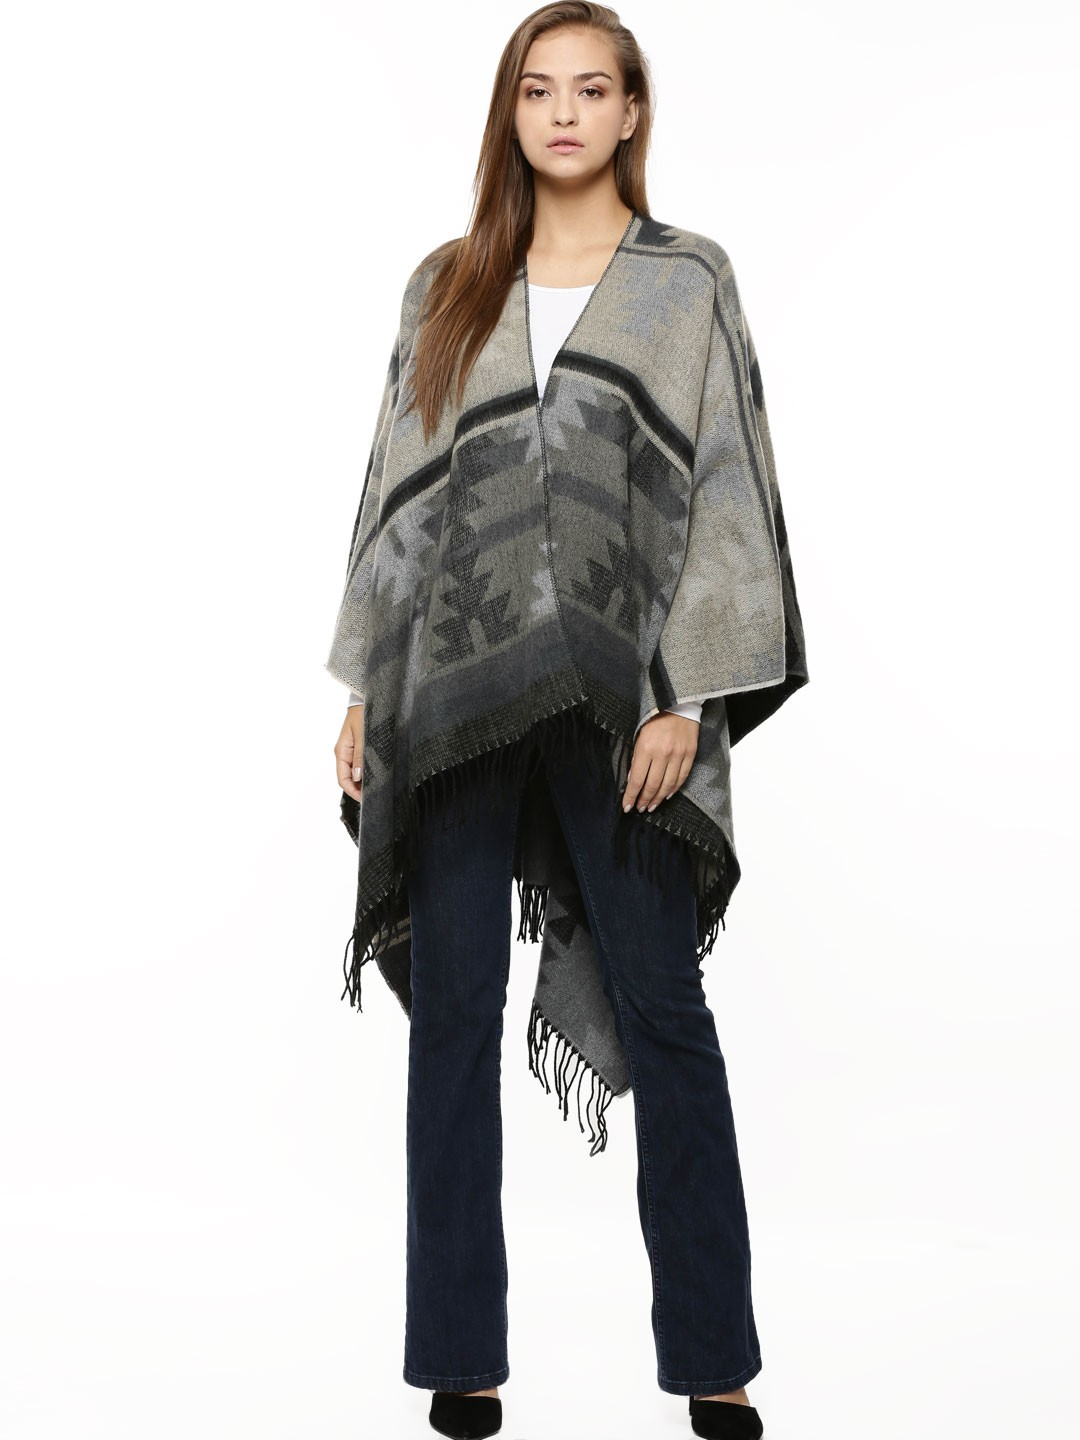 Vila Black Fringed Poncho 1